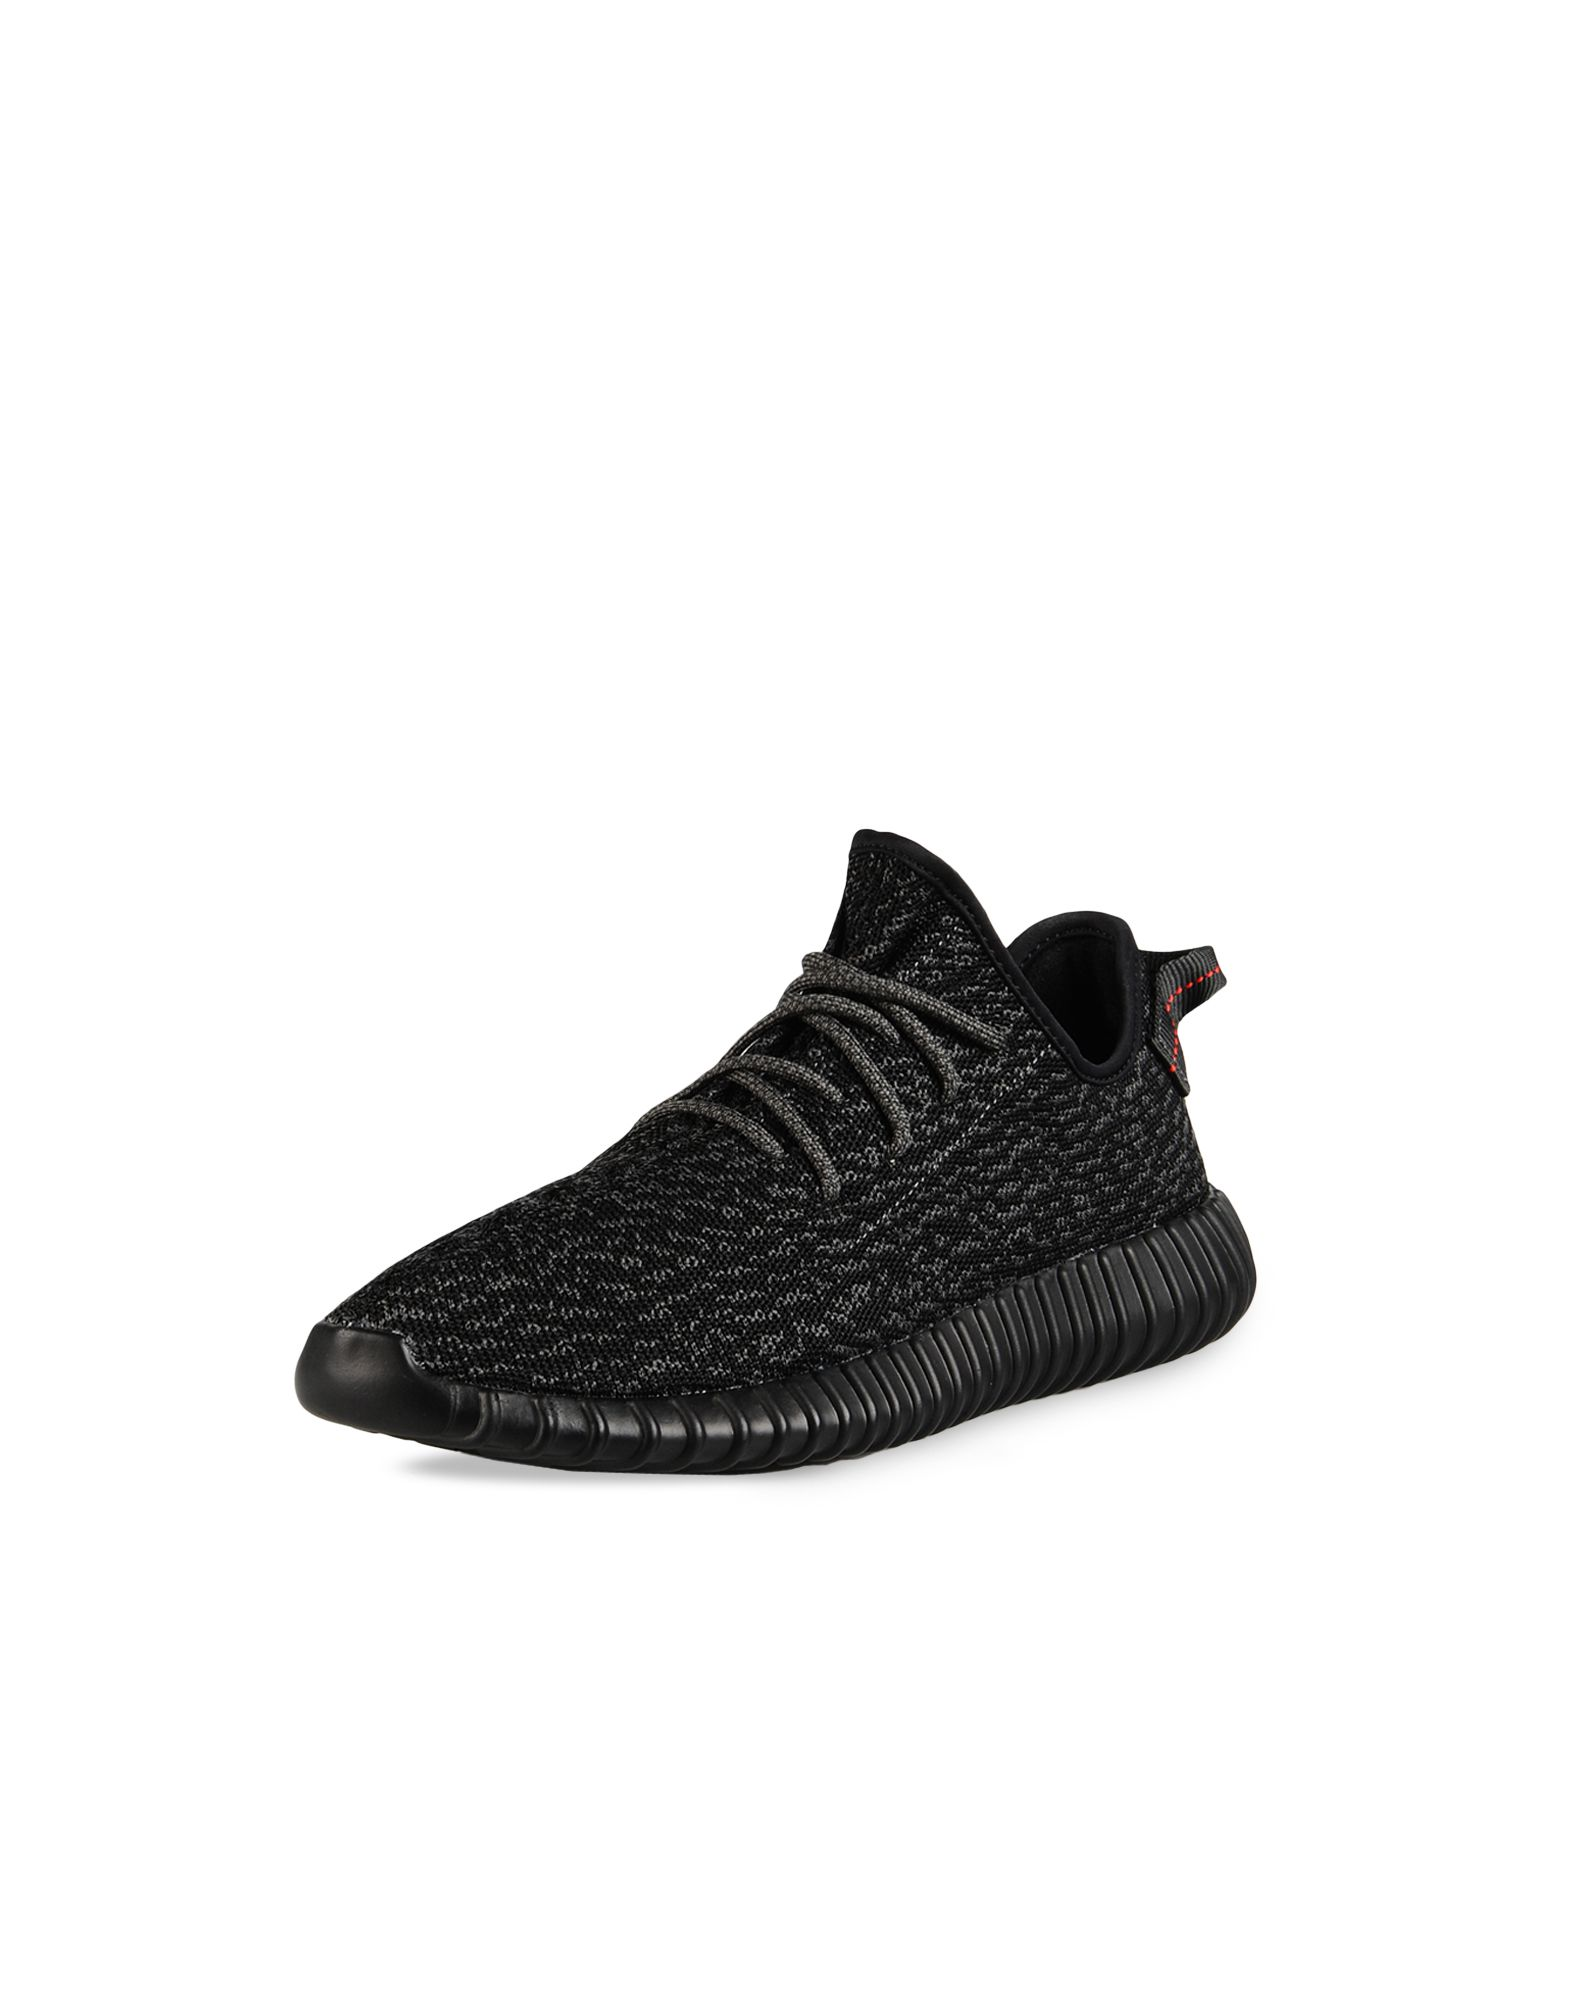 big sale c0e77 e0c29 YEEZY BOOST 350 Trainers   Adidas Y-3 Official Site